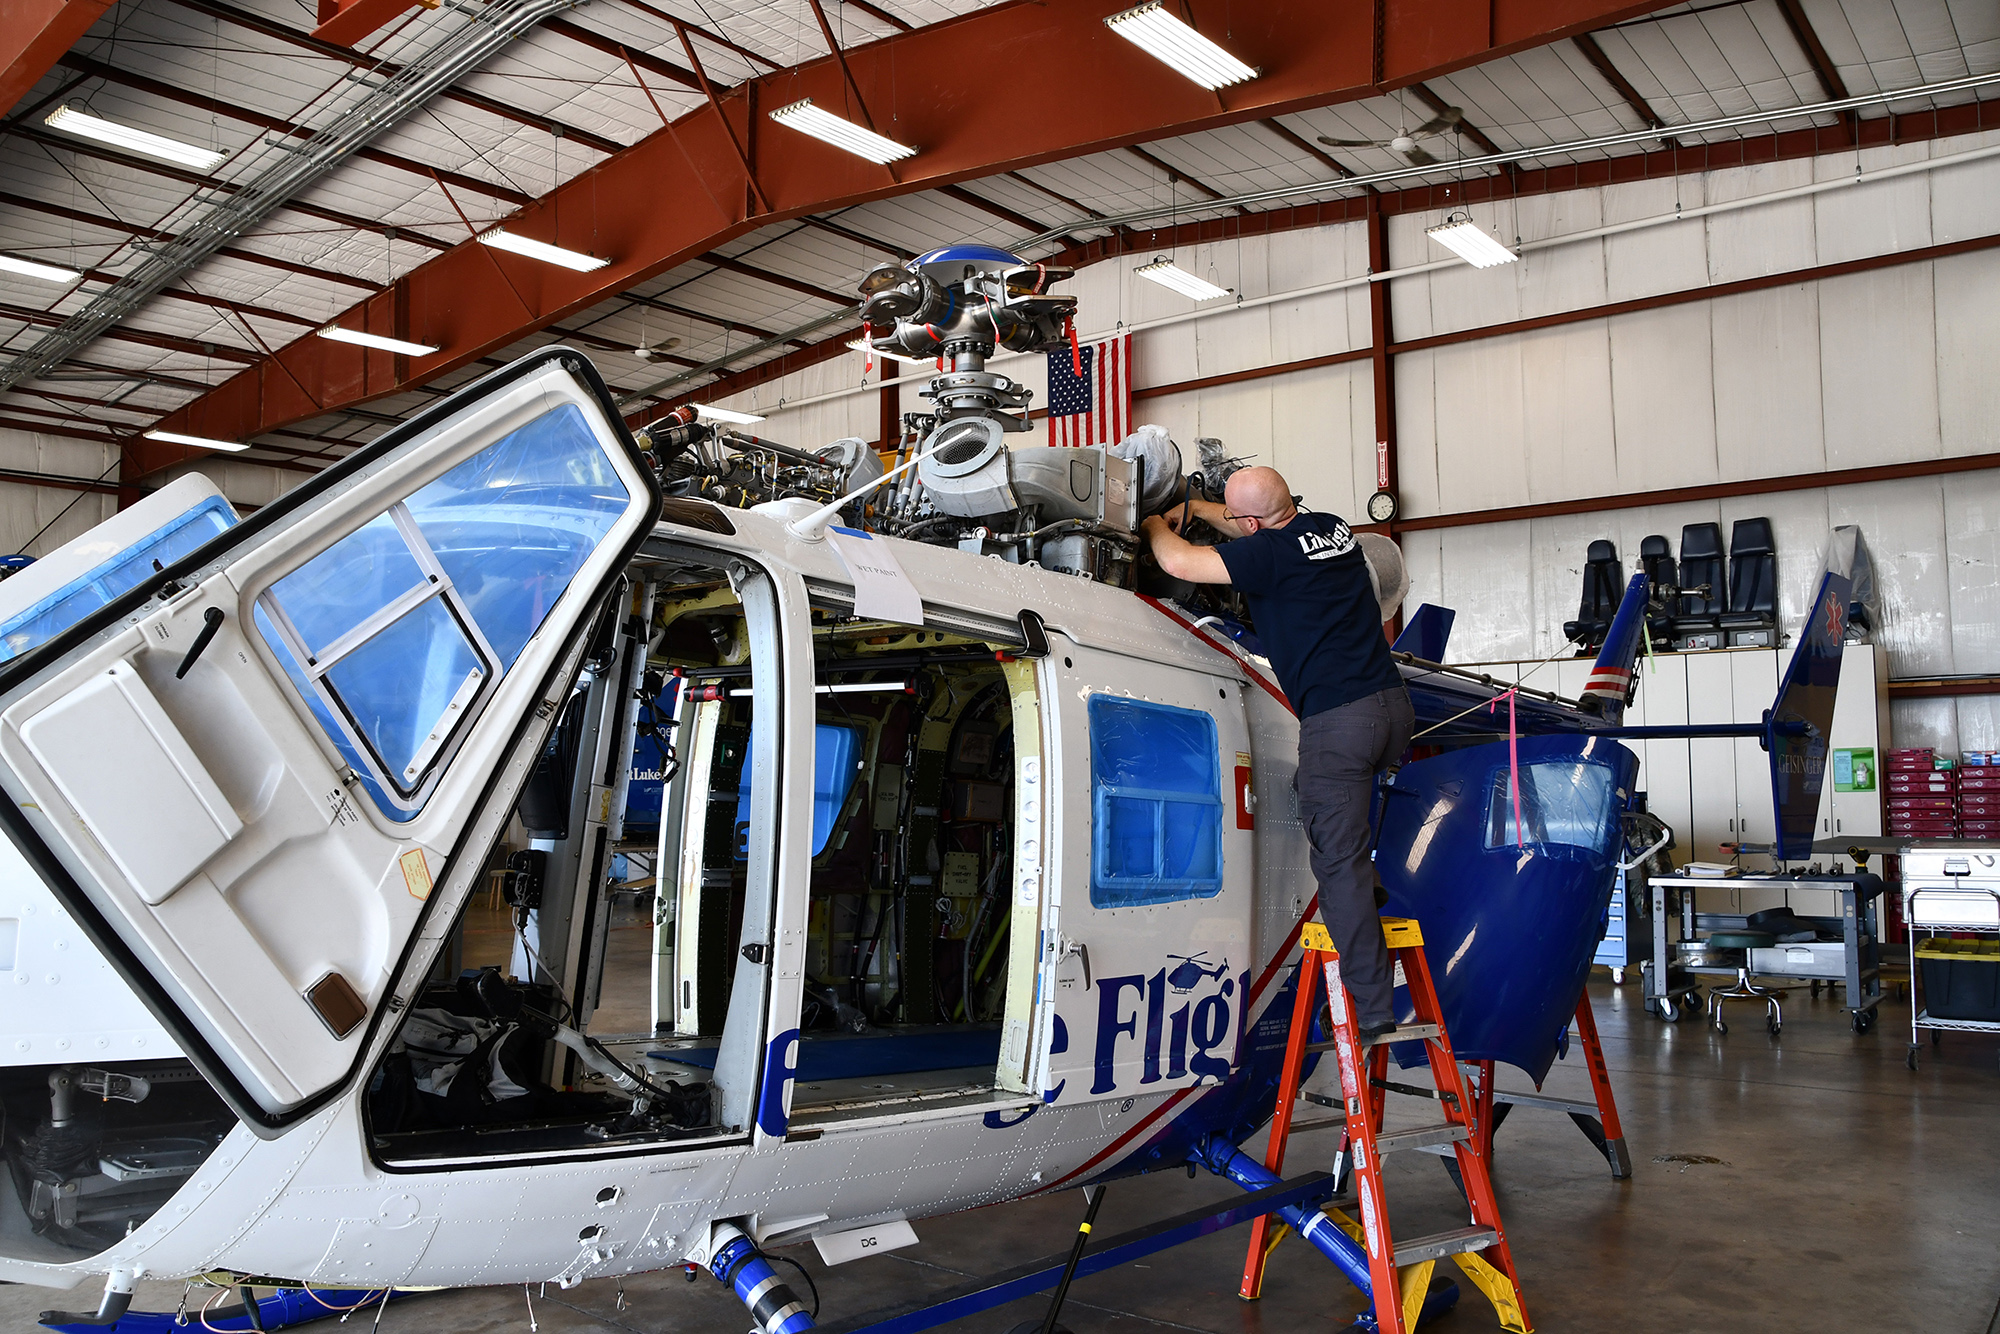 Geisinger Life Flight - Maintenance Technician Performing Maintenance on a BK117 Helicopter